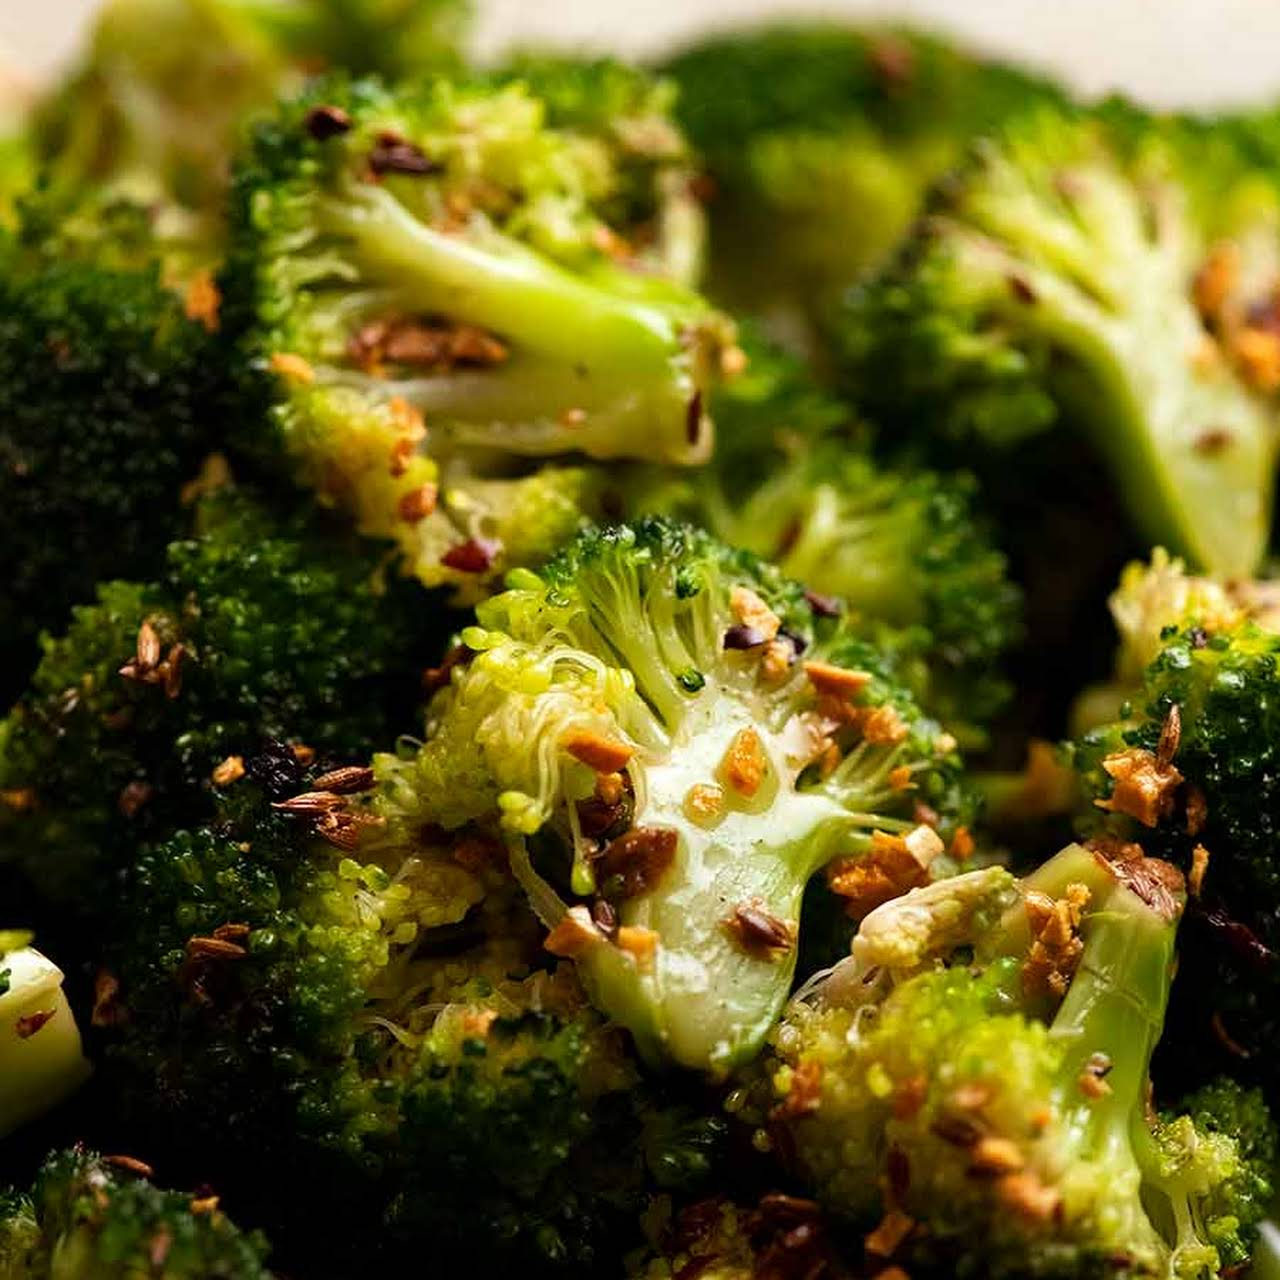 New York Times Famous Broccoli Salad – with Cumin, Garlic and Sesame